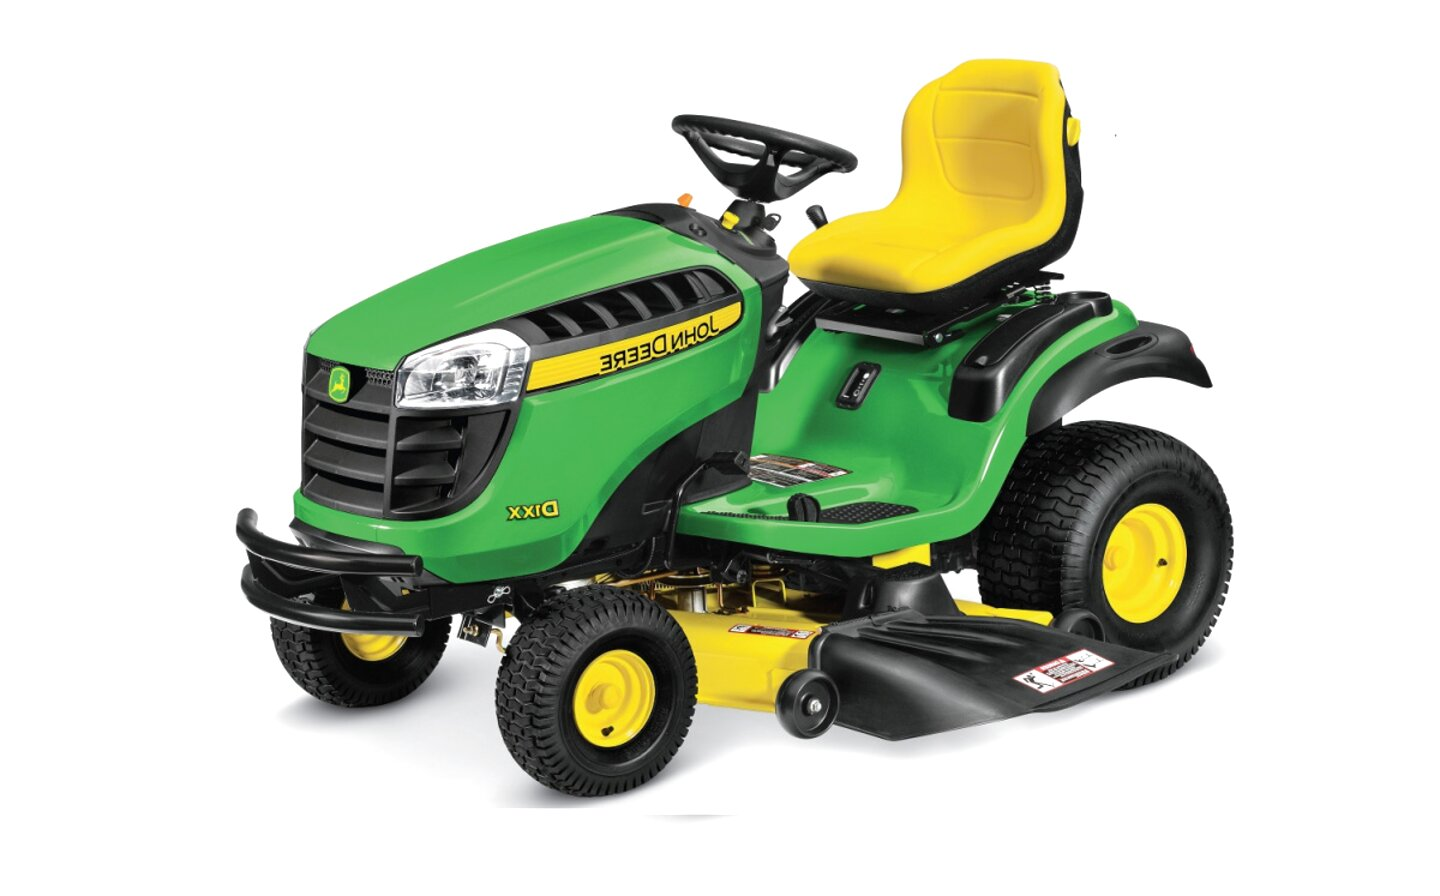 John Deere Lawn Mower for sale compared to CraigsList ...